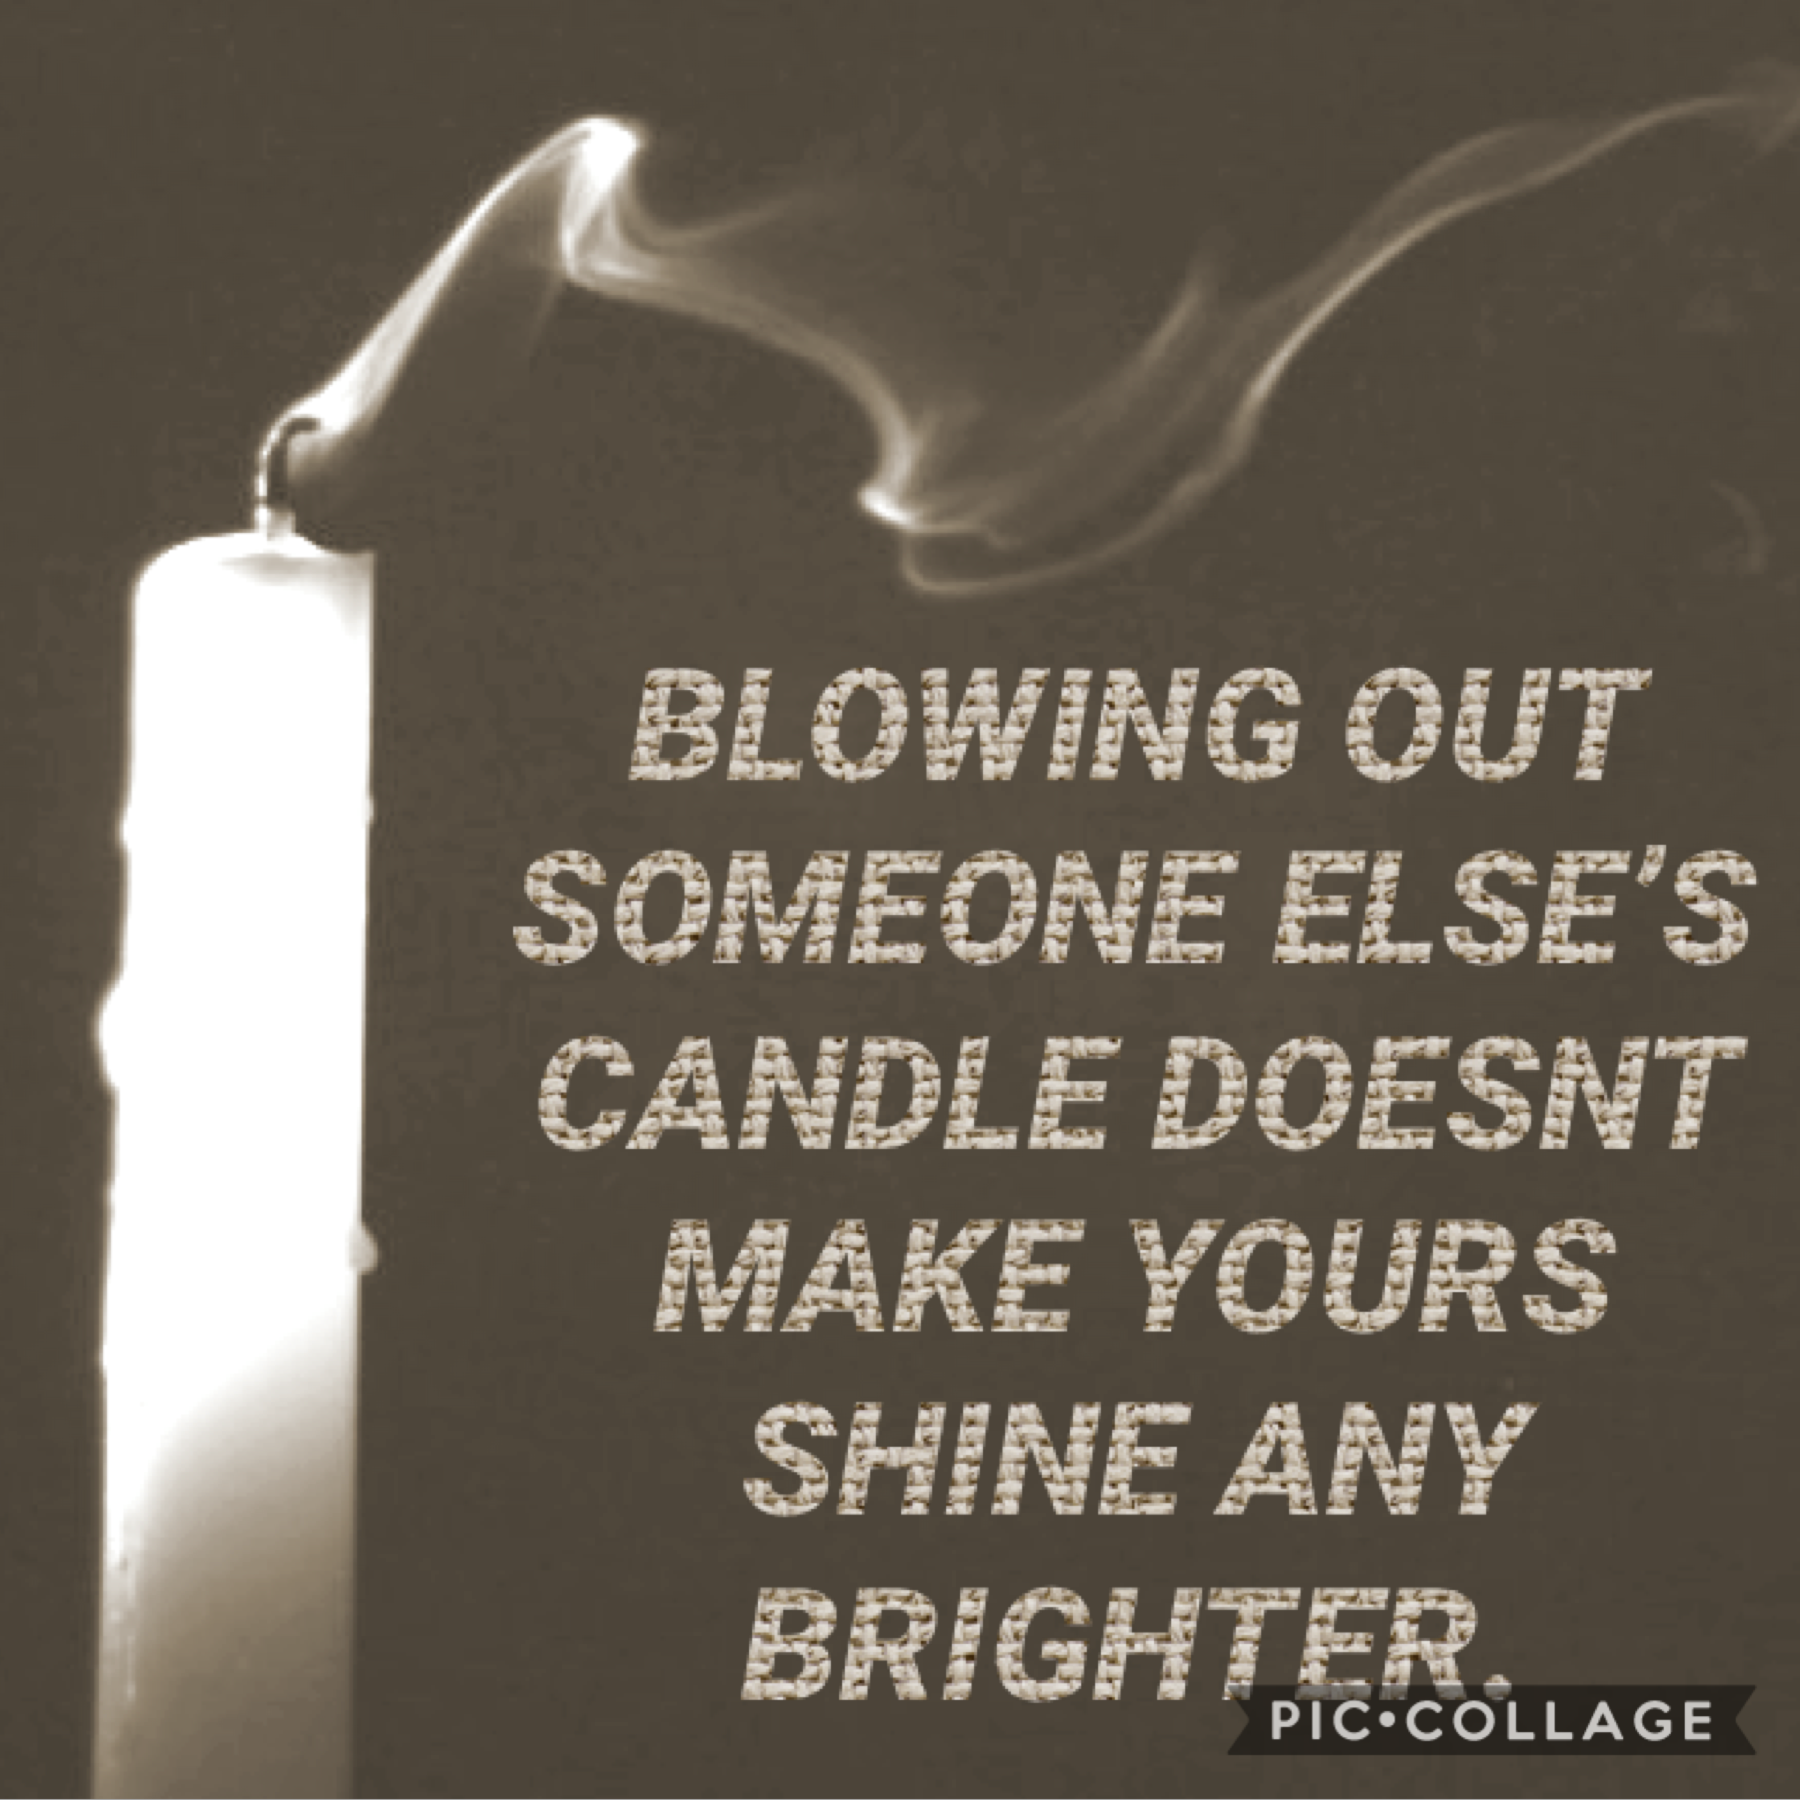 It diminishes your own light.